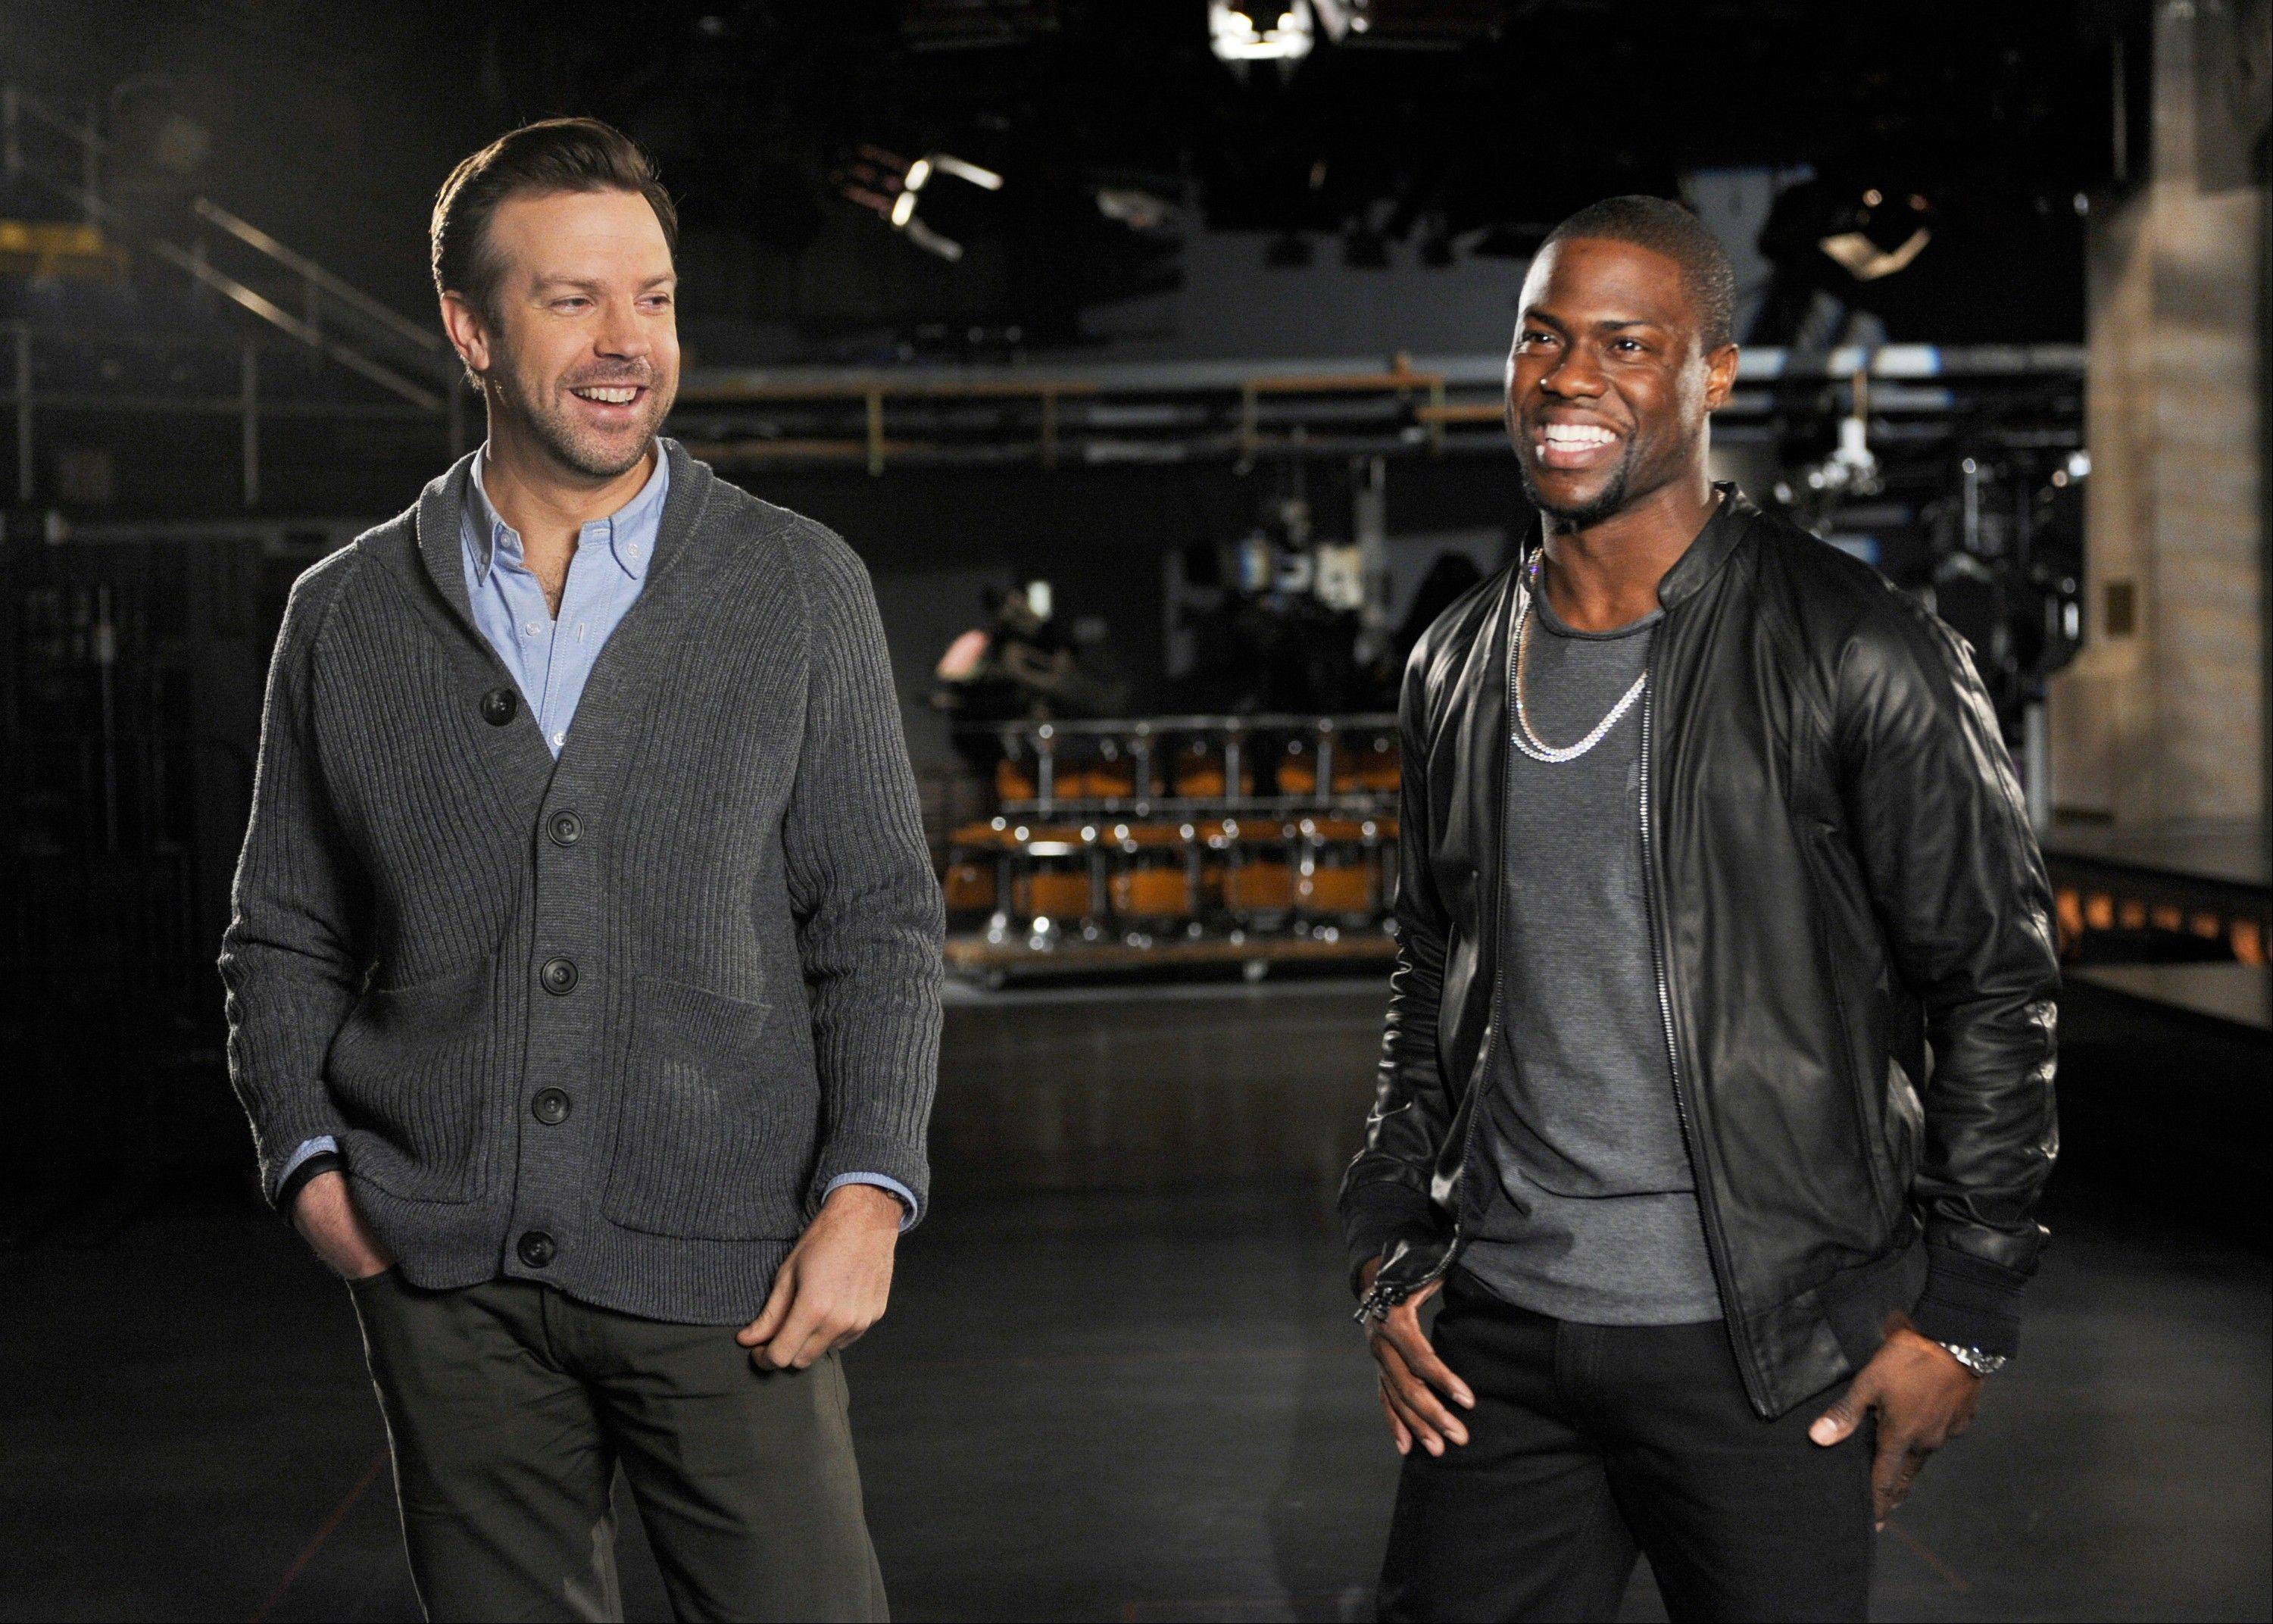 Cast member Jason Sudeikis, left, and guest host Kevin Hart during rehearsals for �Saturday Night Live� in New York. Hart will host the show on Saturday, March 2, with musical guest Macklemore & Ryan Lewis.